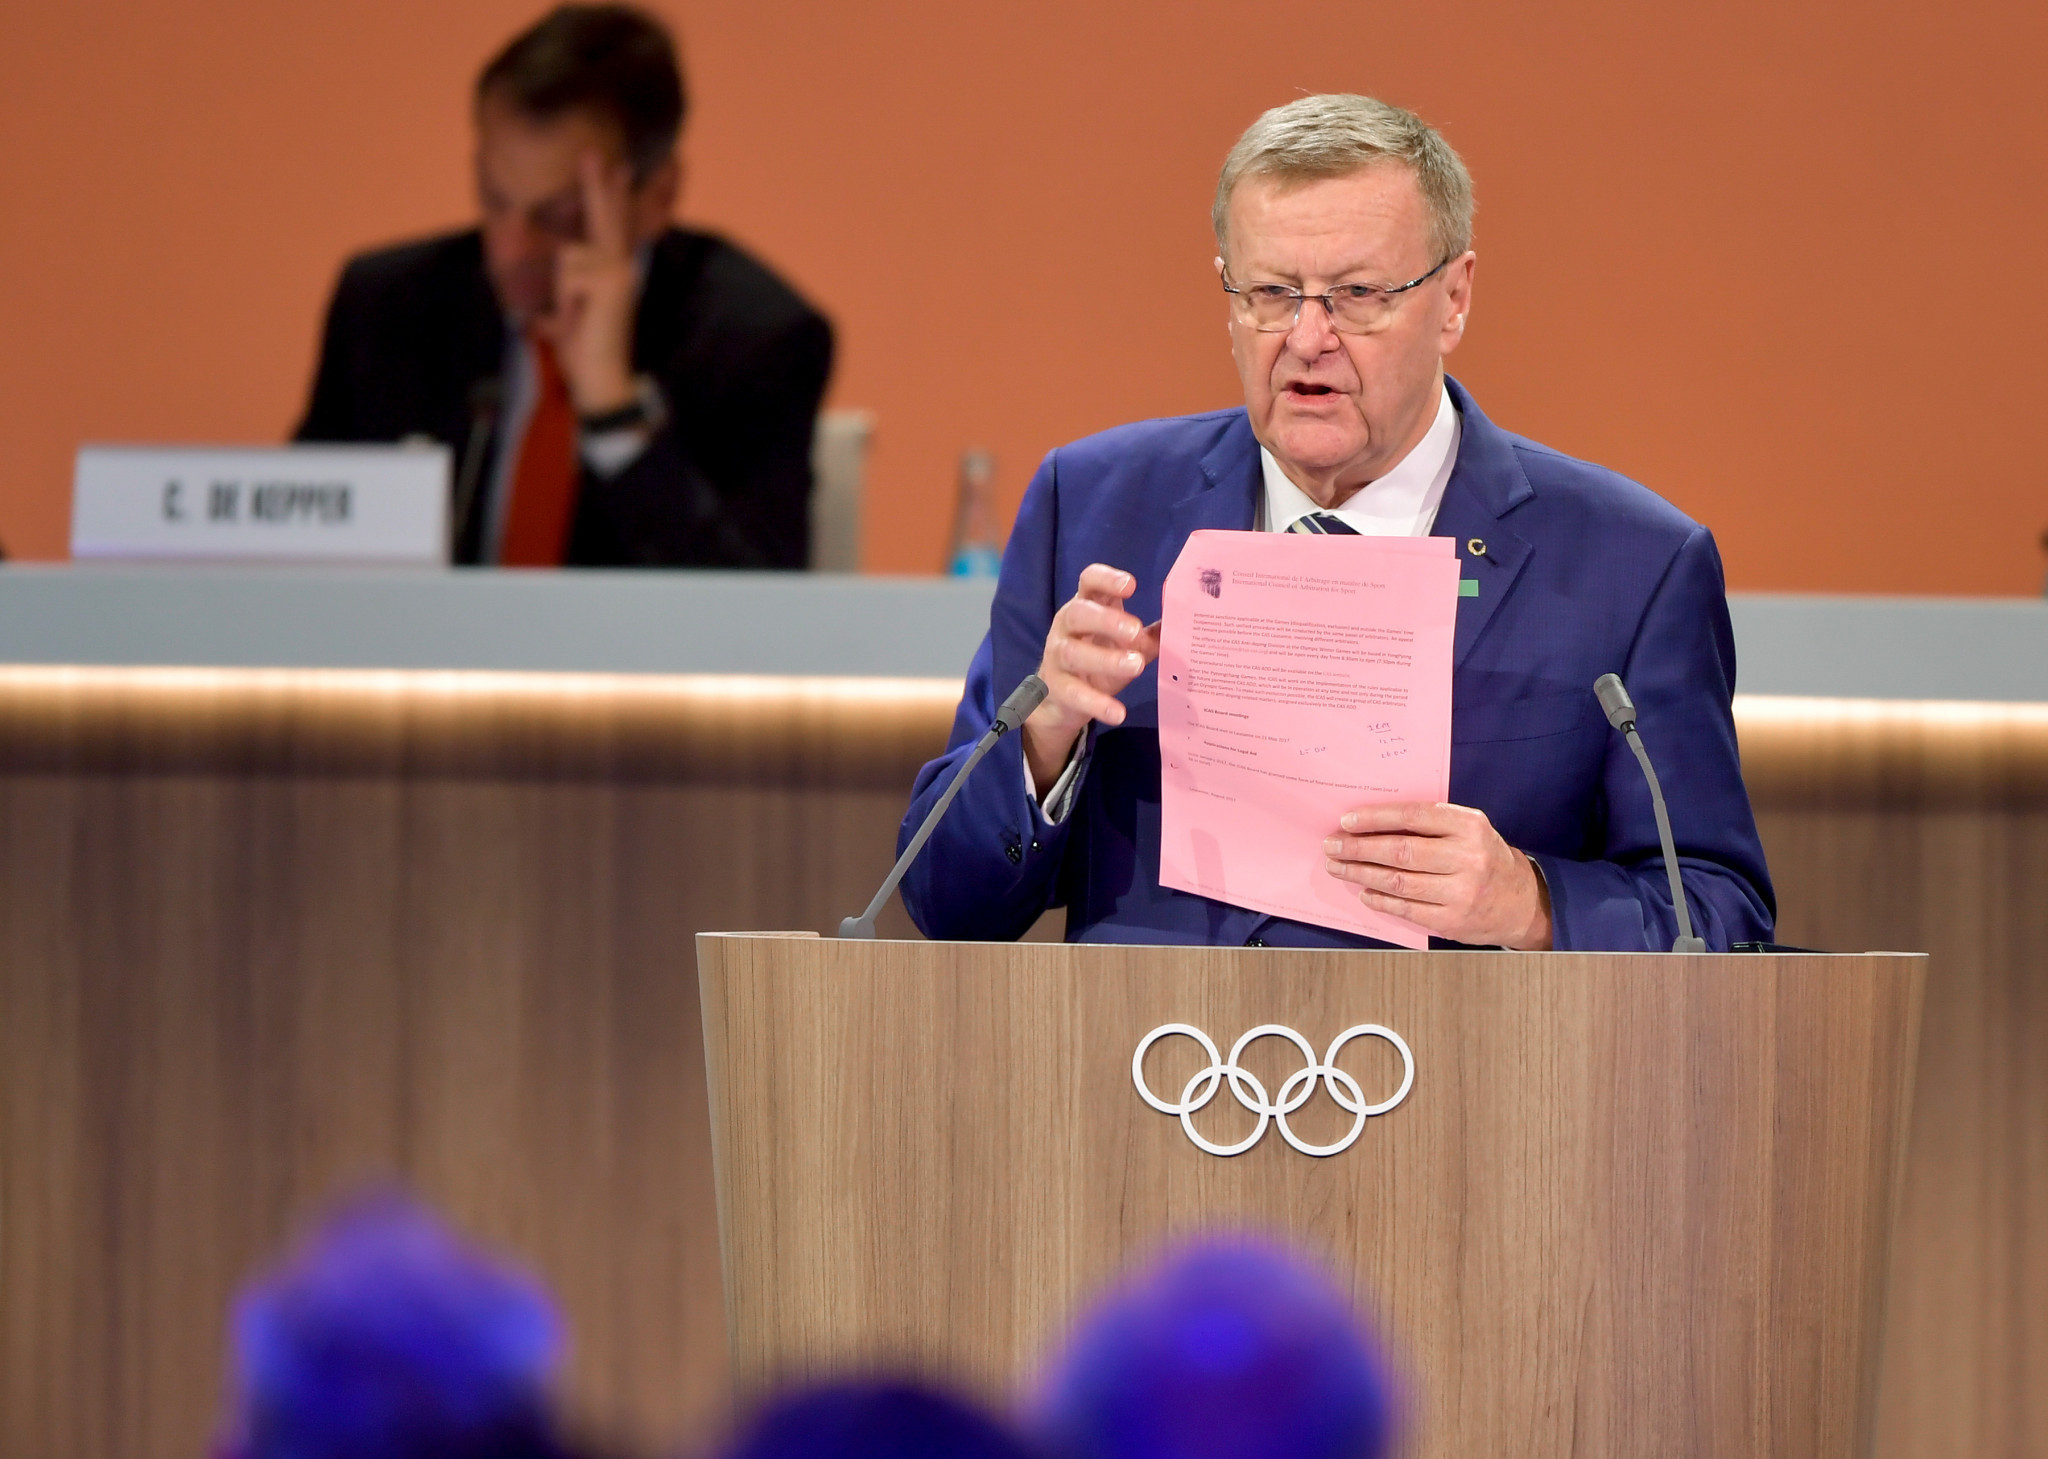 Court of Arbitration for Sport President John Coates was also an IOC vice-president and Executive Board member until he reached the end of his term last year ©Getty Images